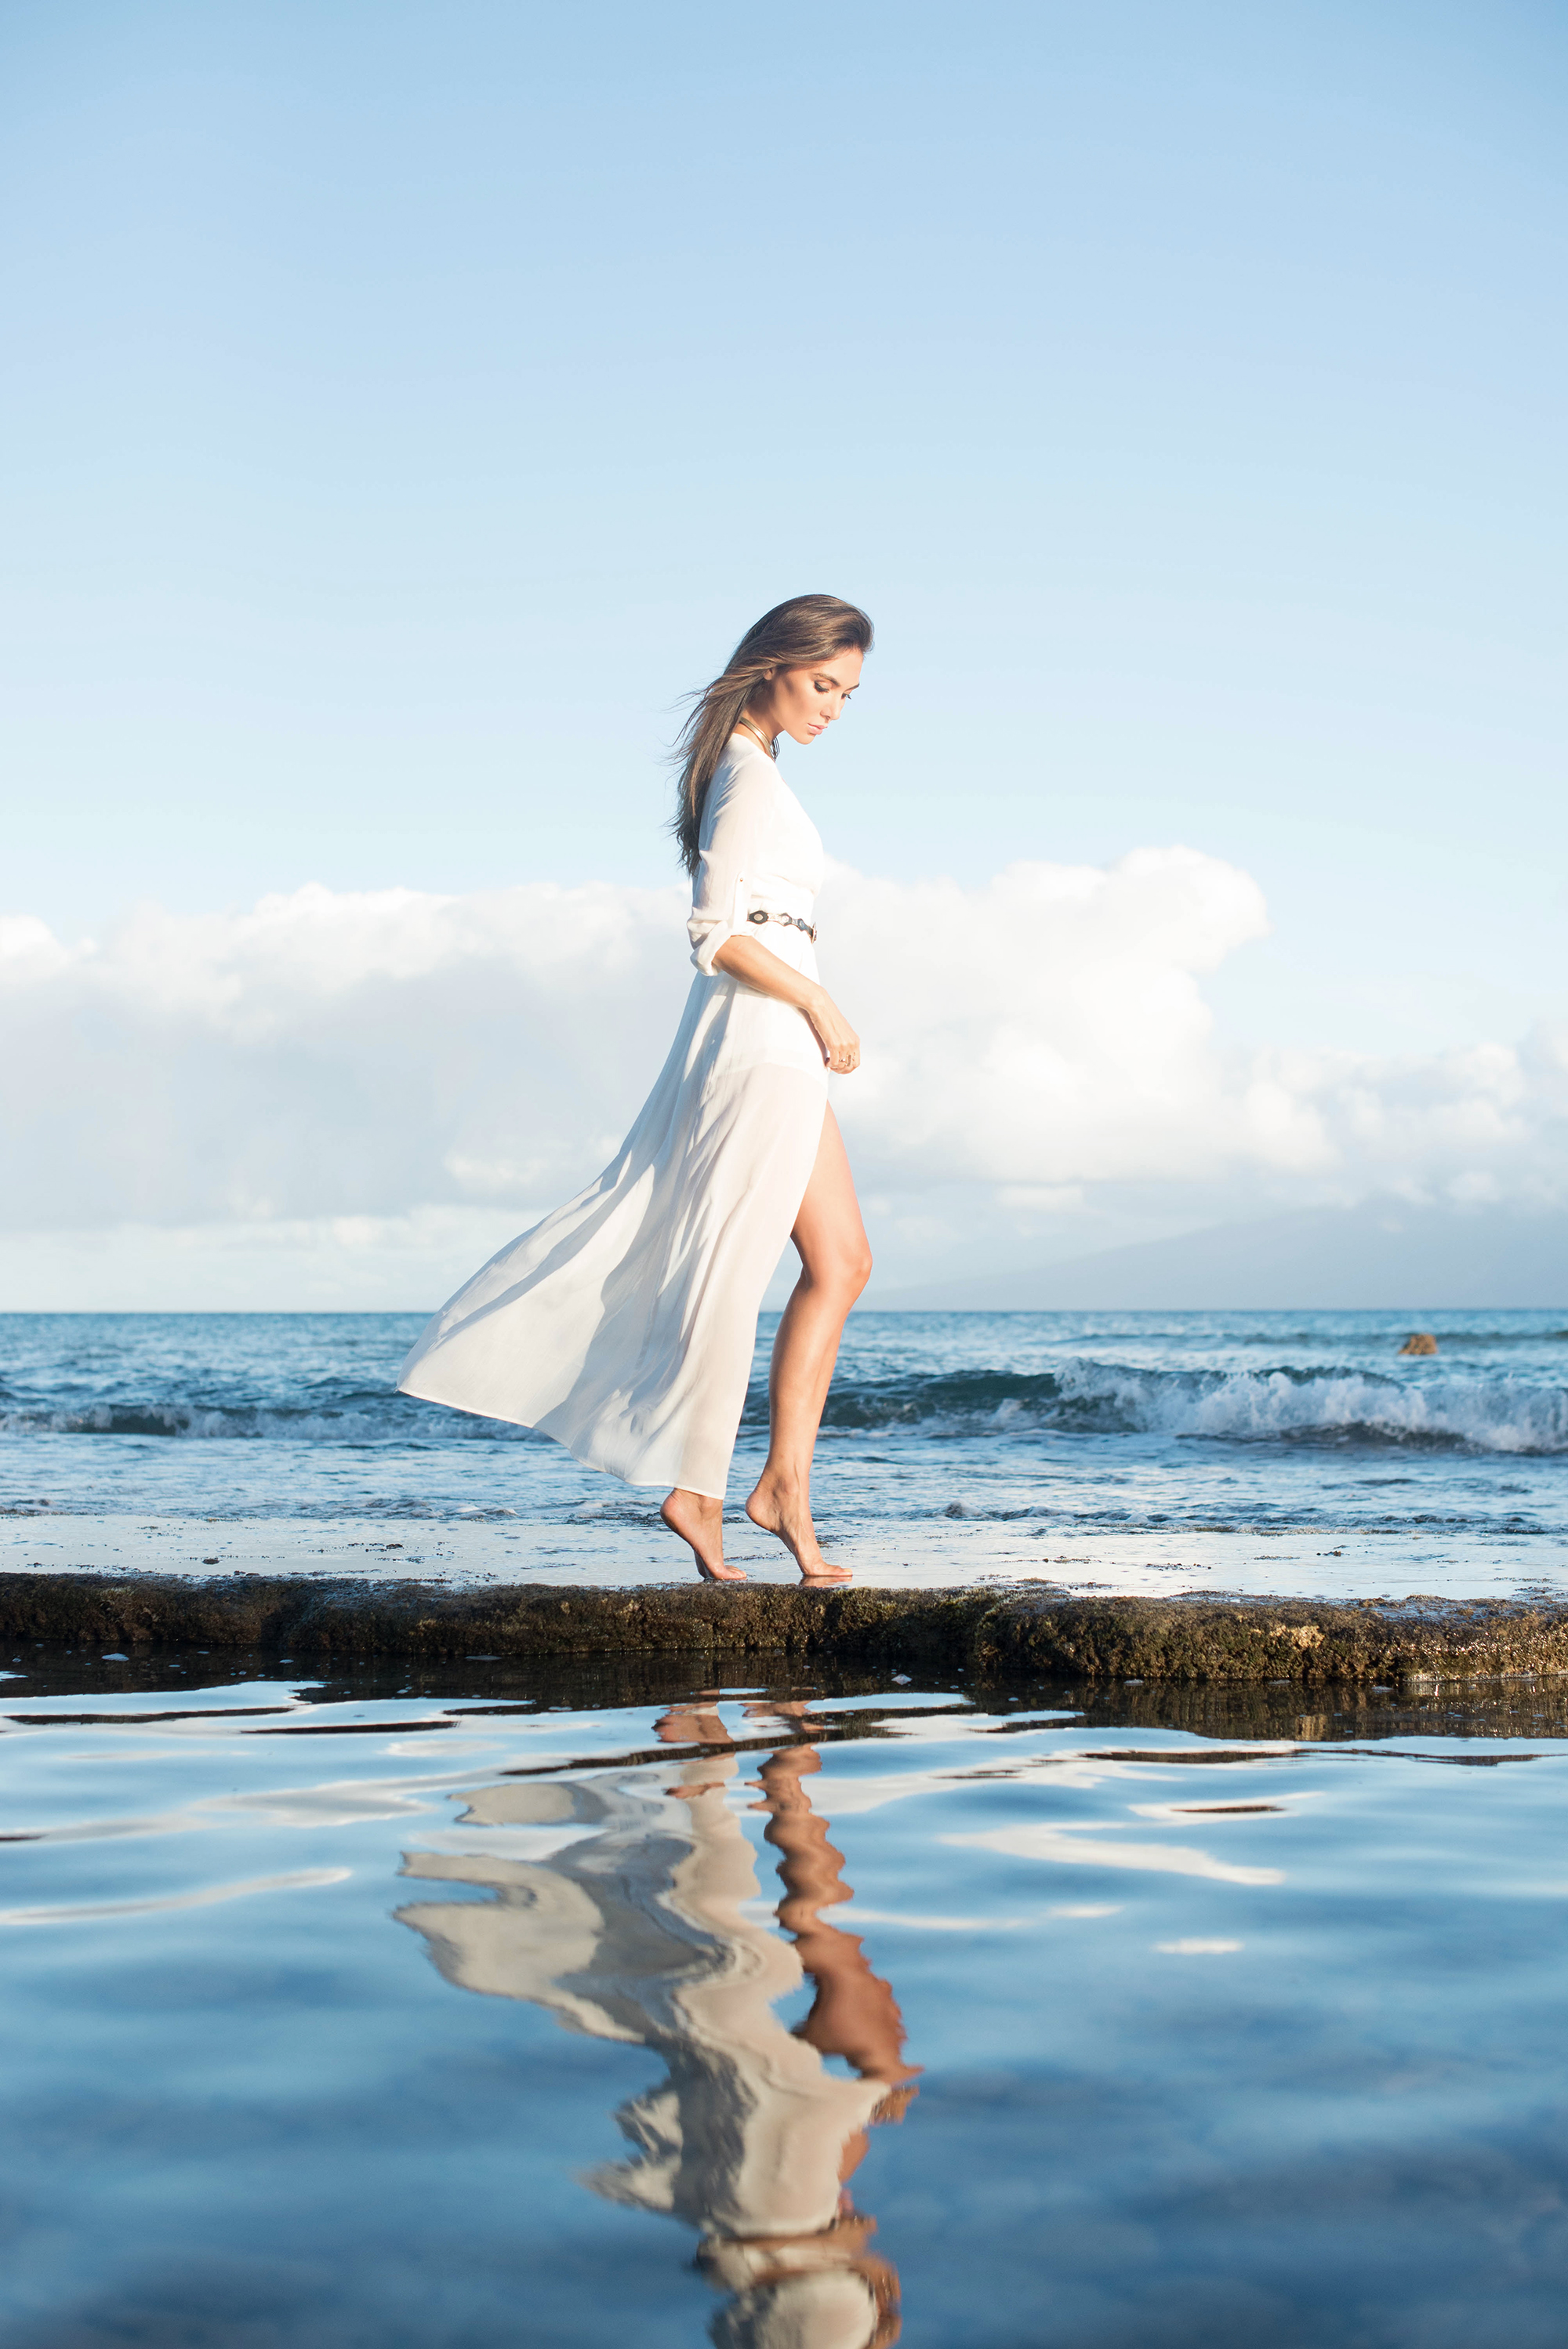 White gown on by the ocean